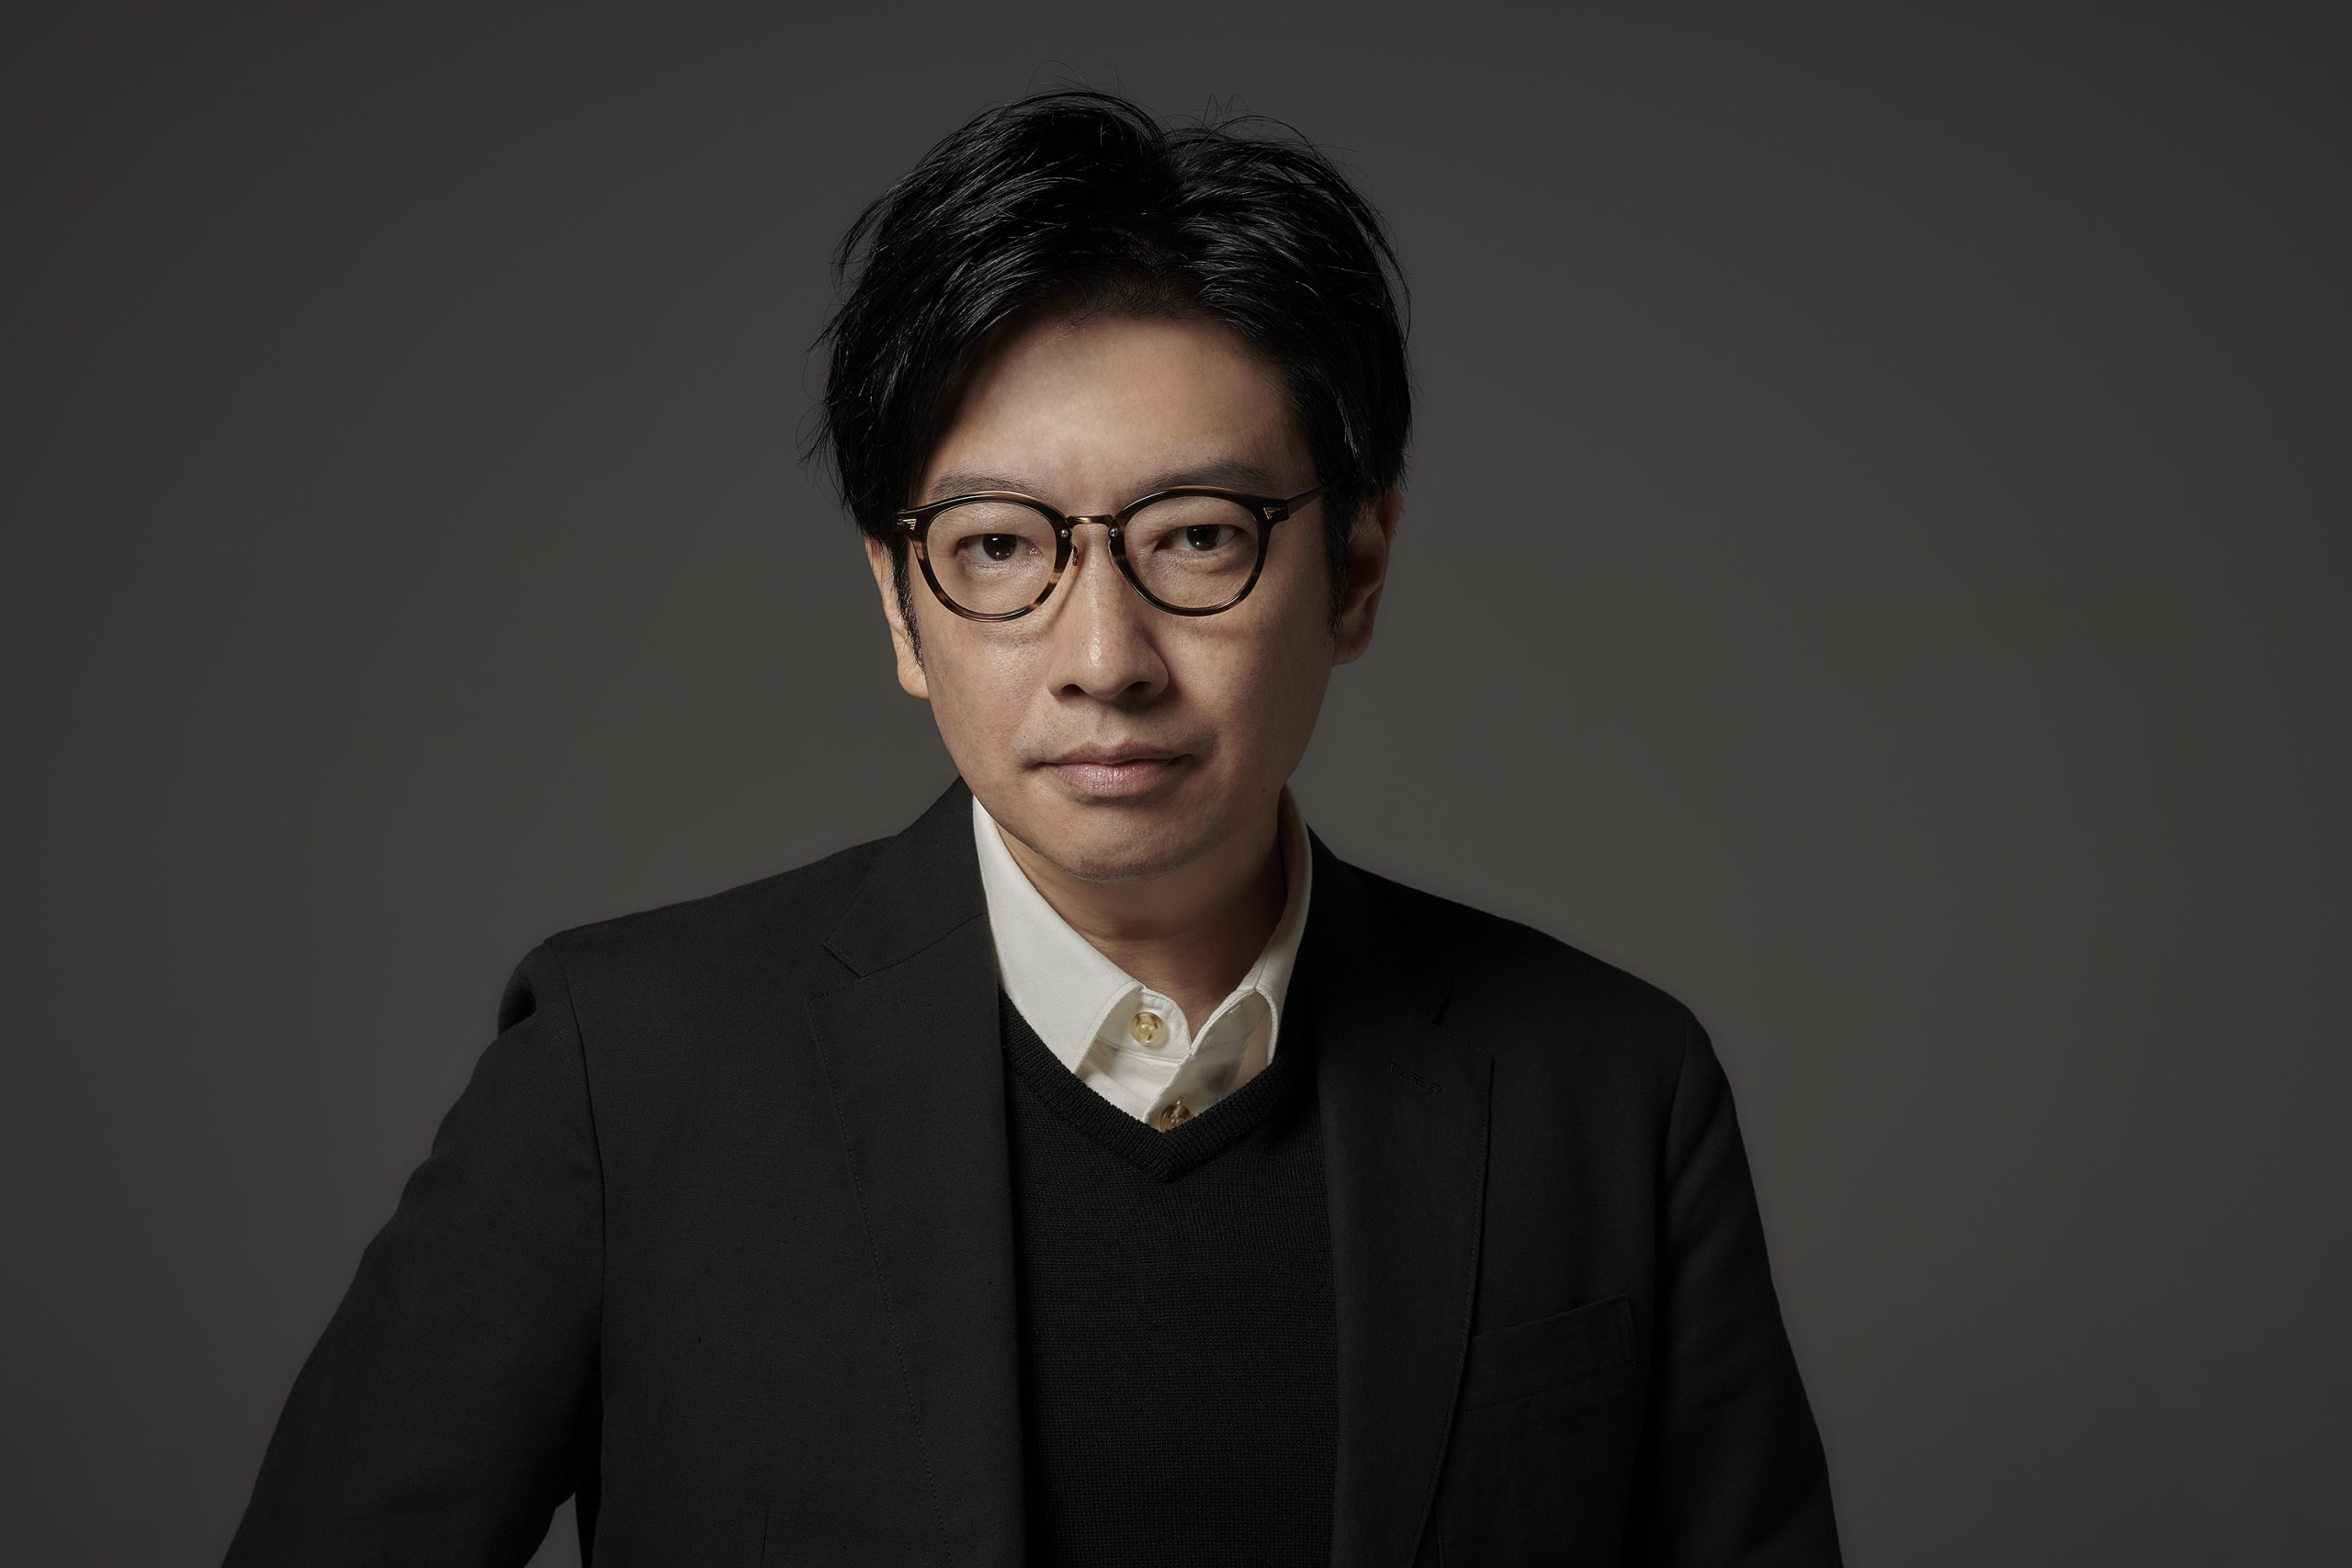 Director of the Tokyo Olympics Opening Ceremony